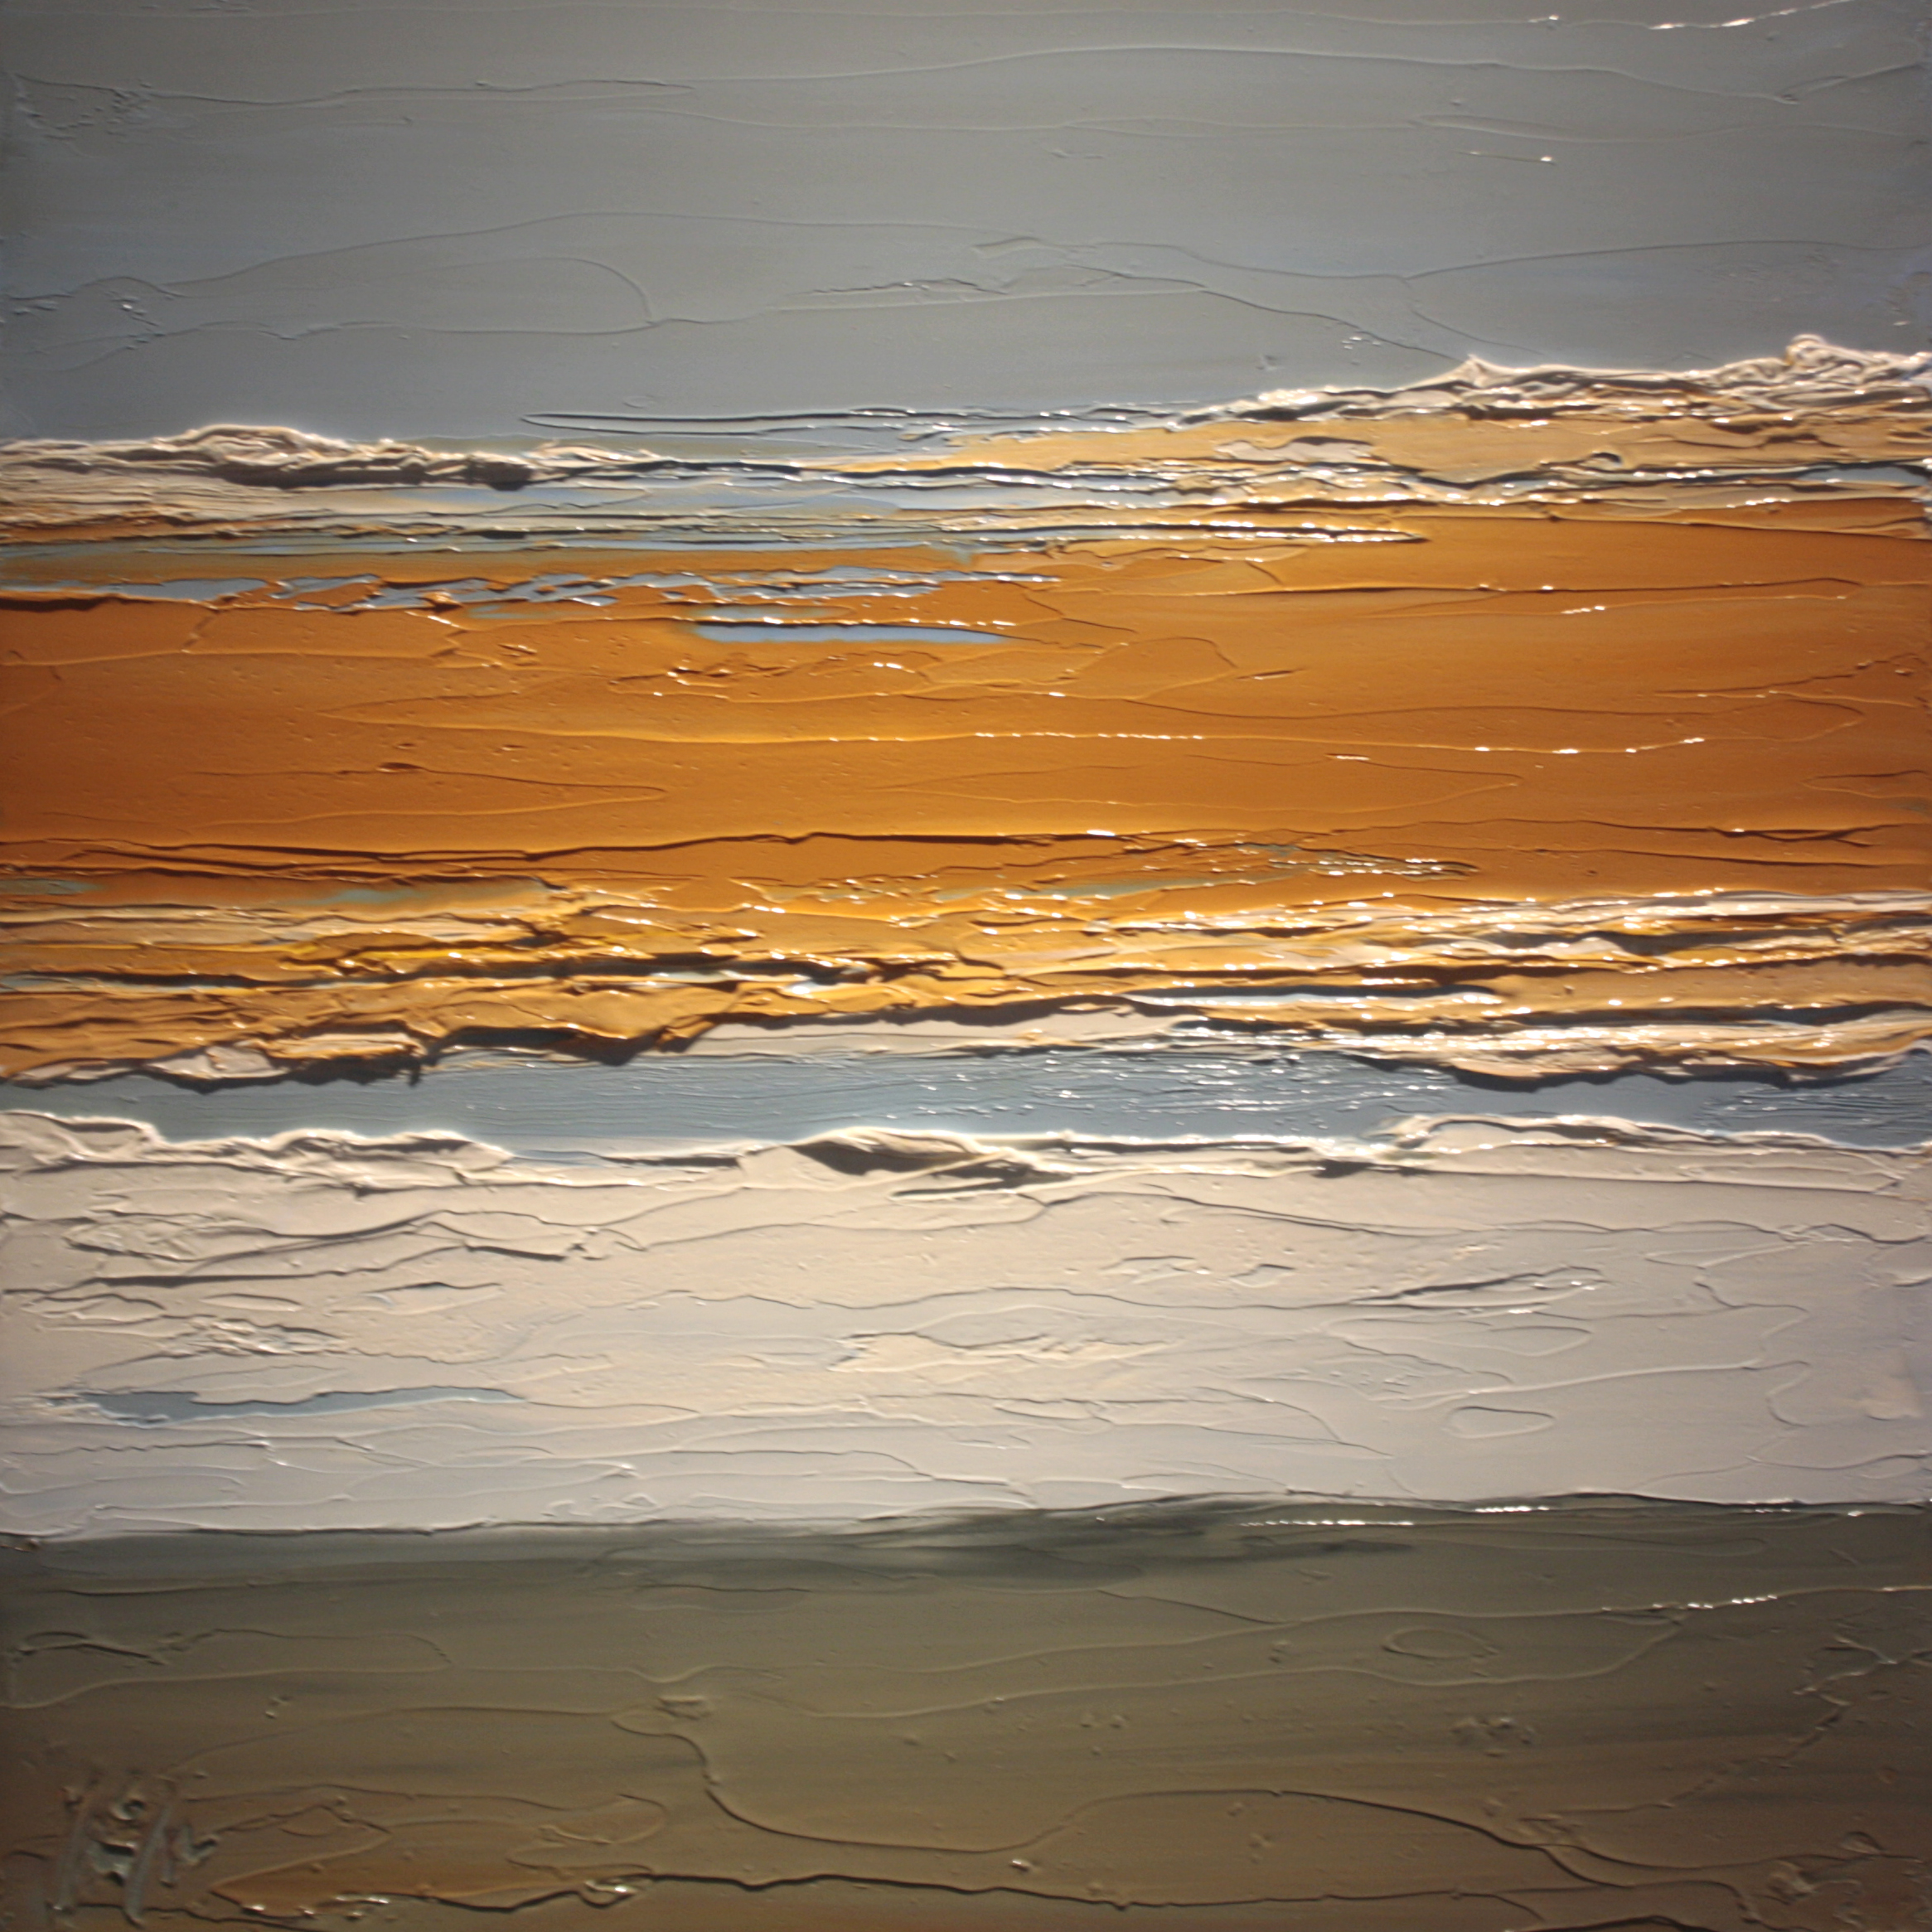 At The Horizon - Orange Sky, oil on board, 12 by 12 inches, 2012 - $2500